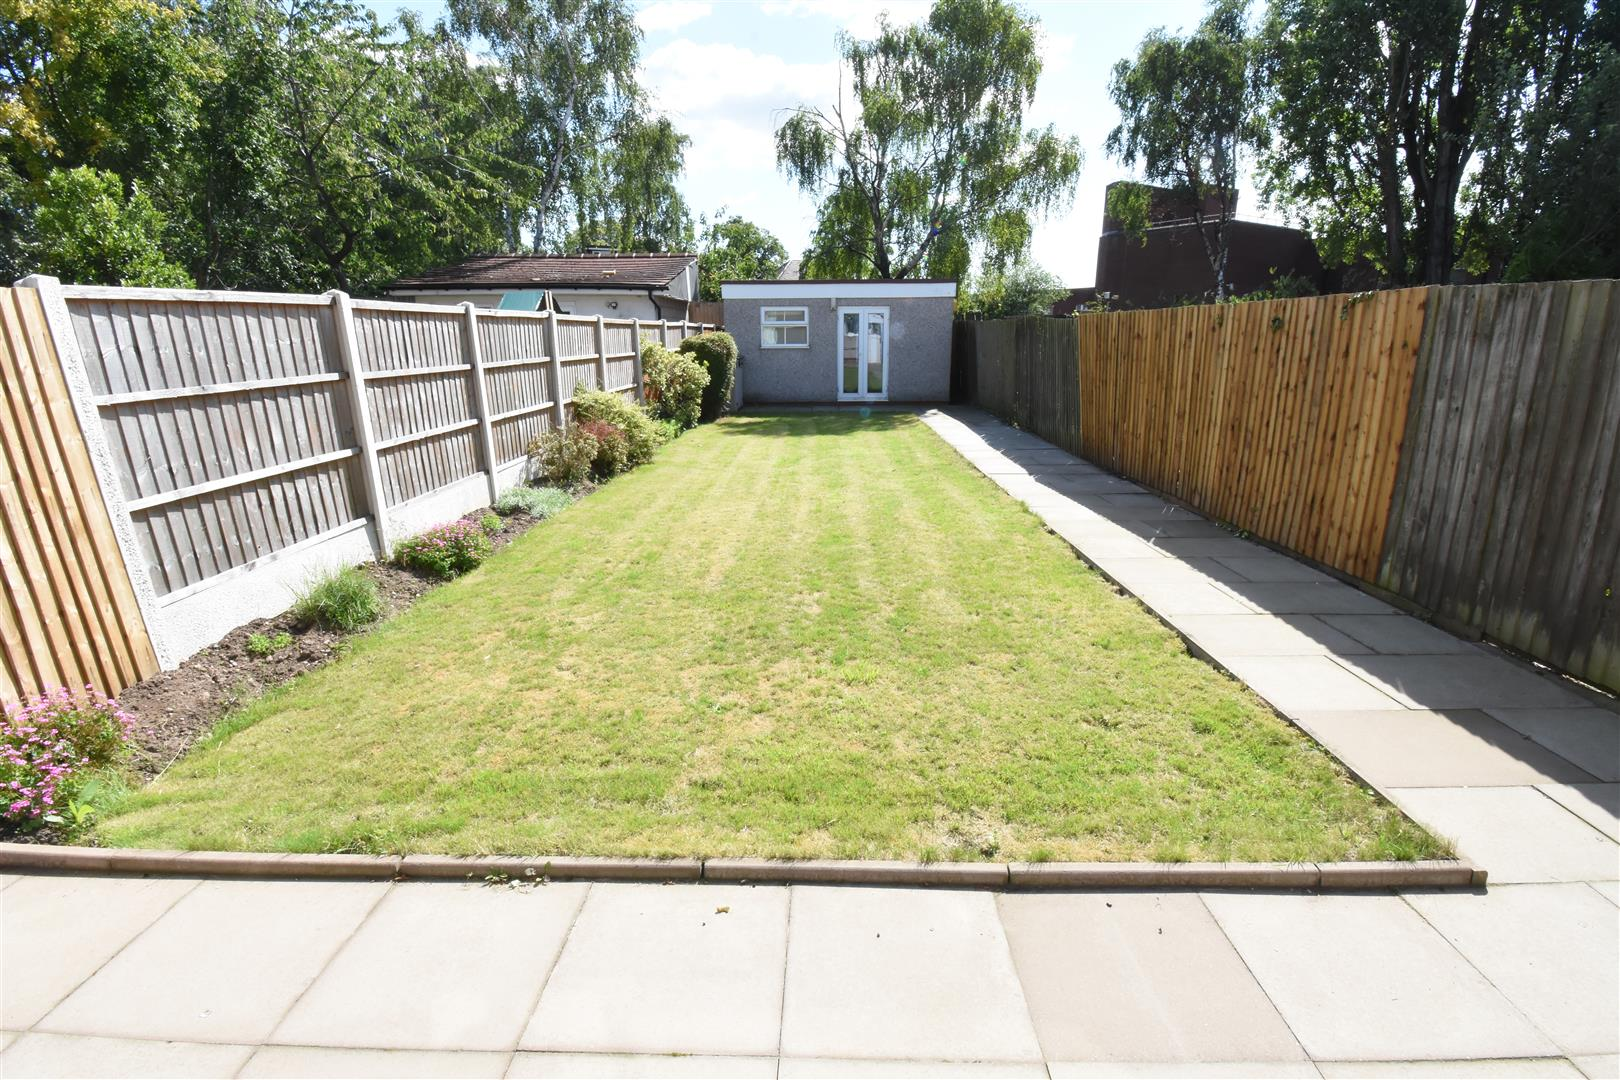 3 bed house for sale in Mickleover Road, Ward End, Birmingham 8